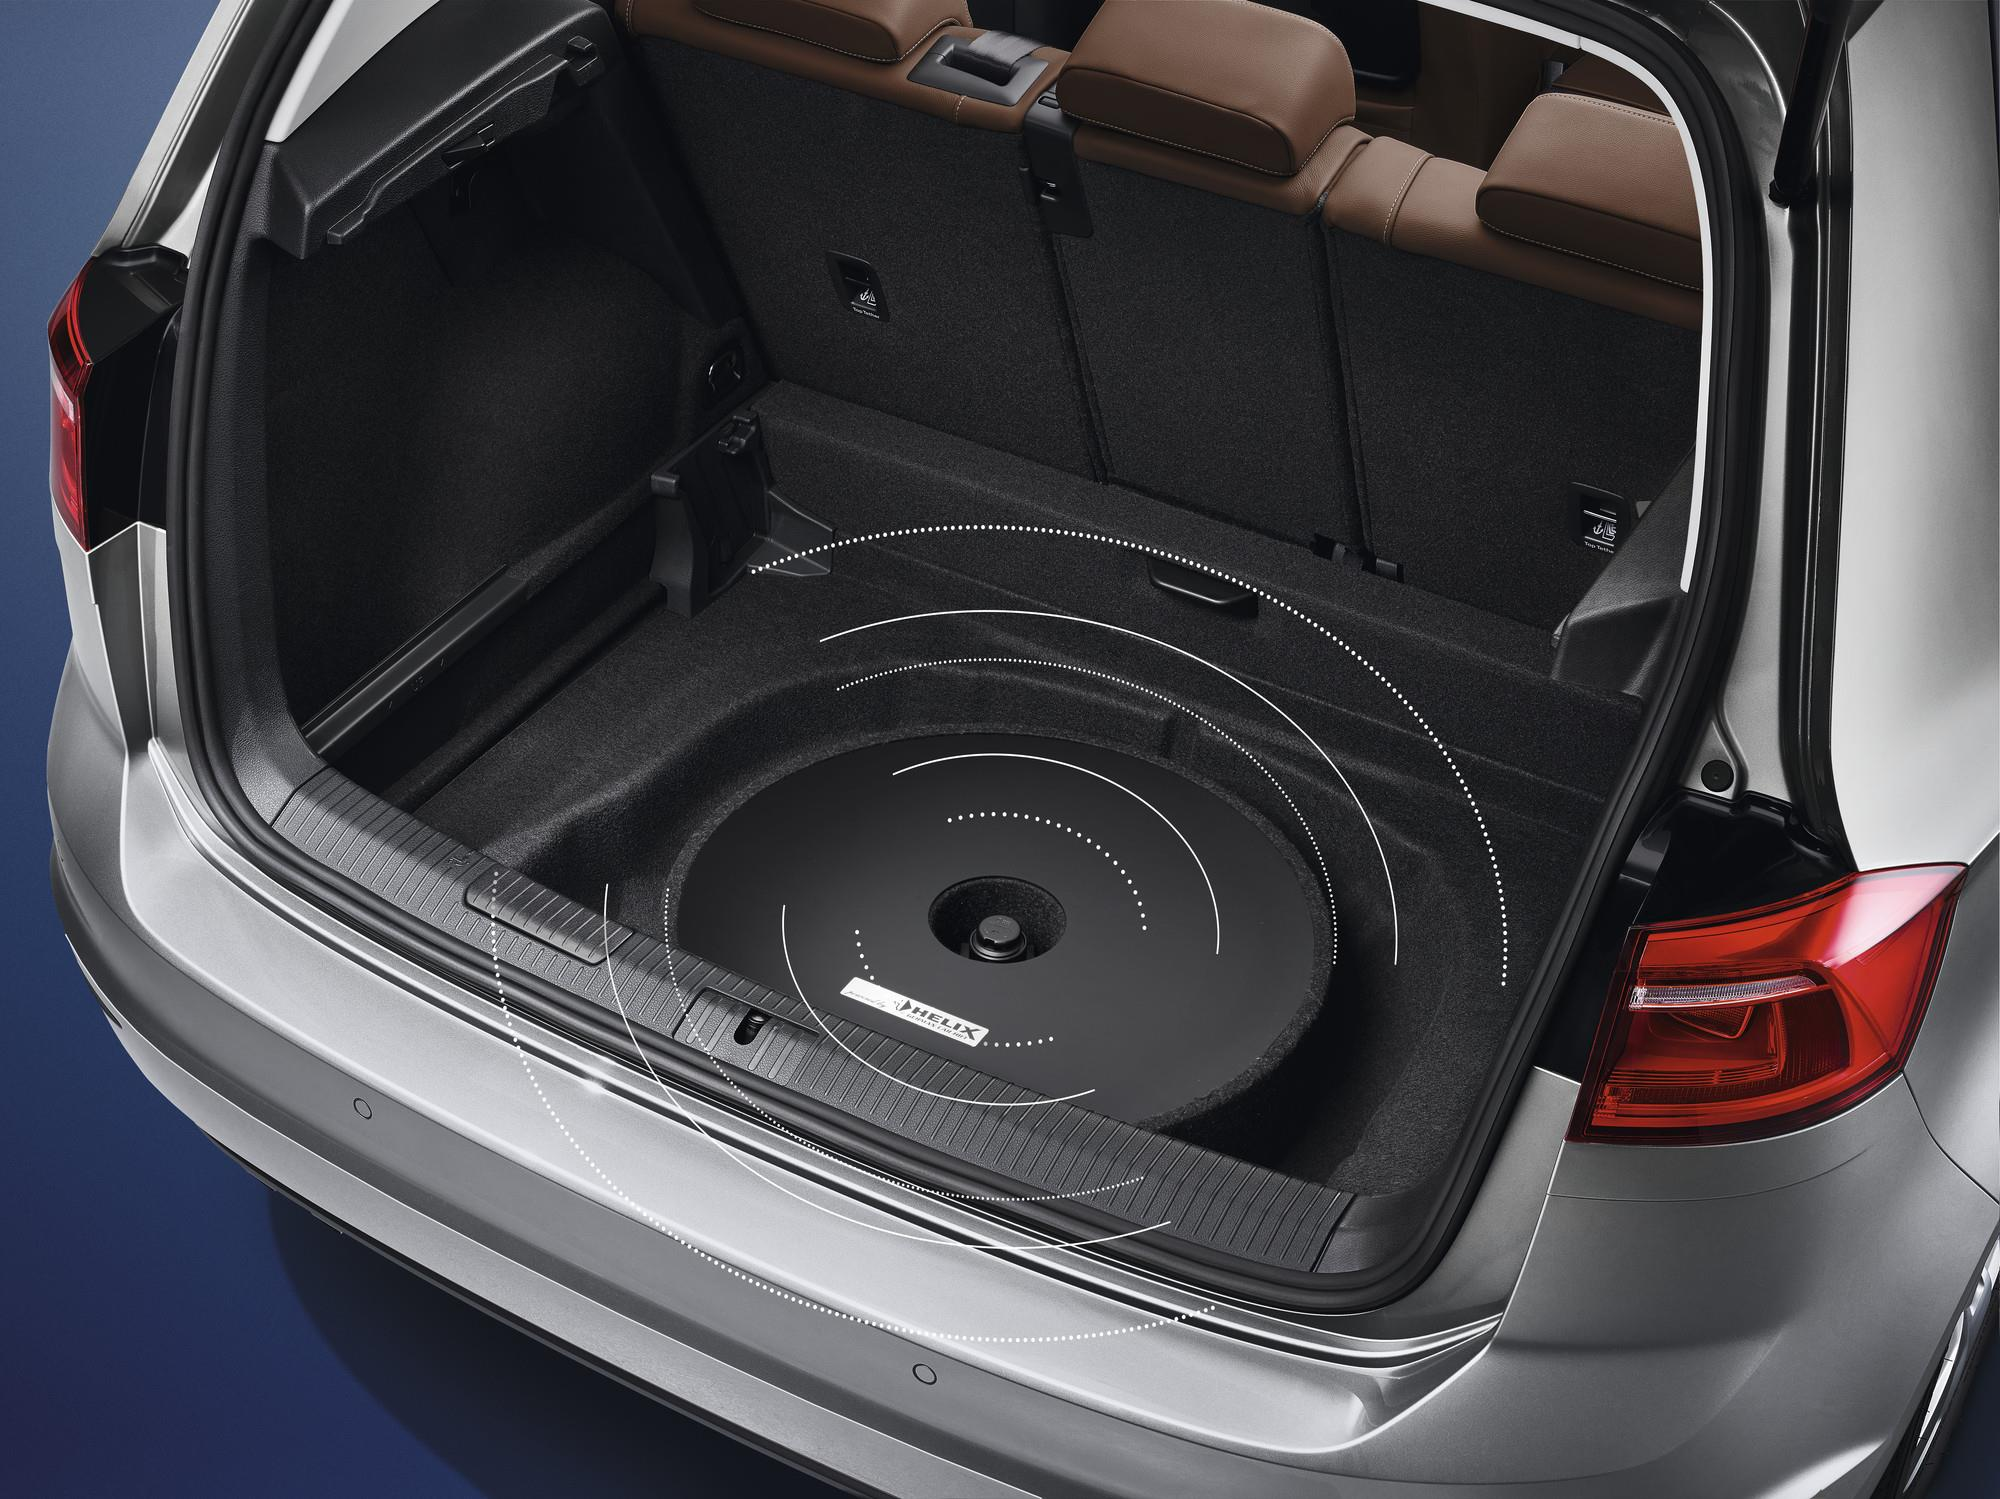 2012 Volkswagen Golf Spare Tire Mount Subwoofer Soundbox